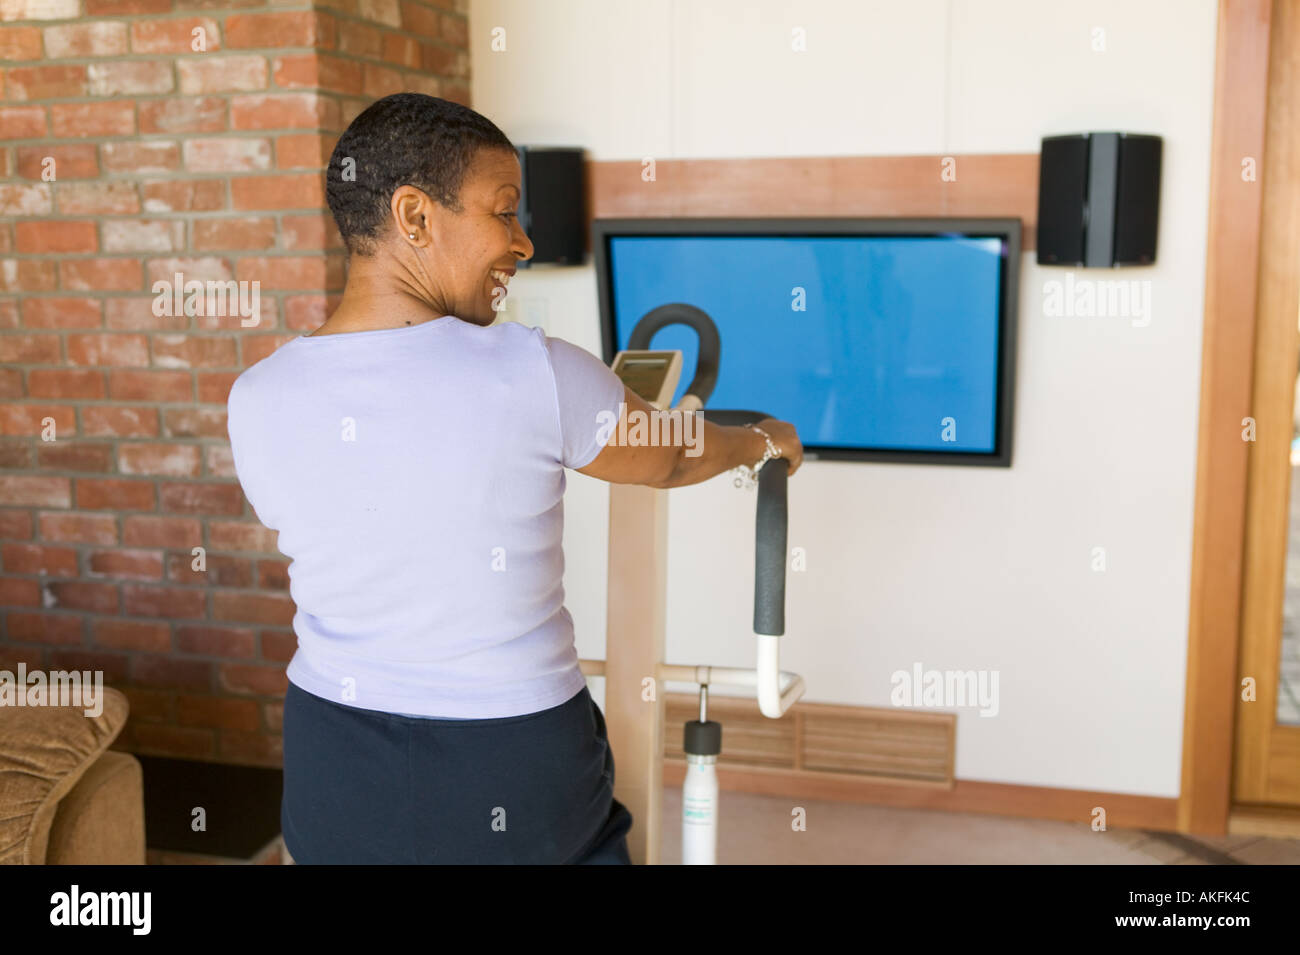 Senior African American exercising on stepper machine and plasma TV - Stock Image